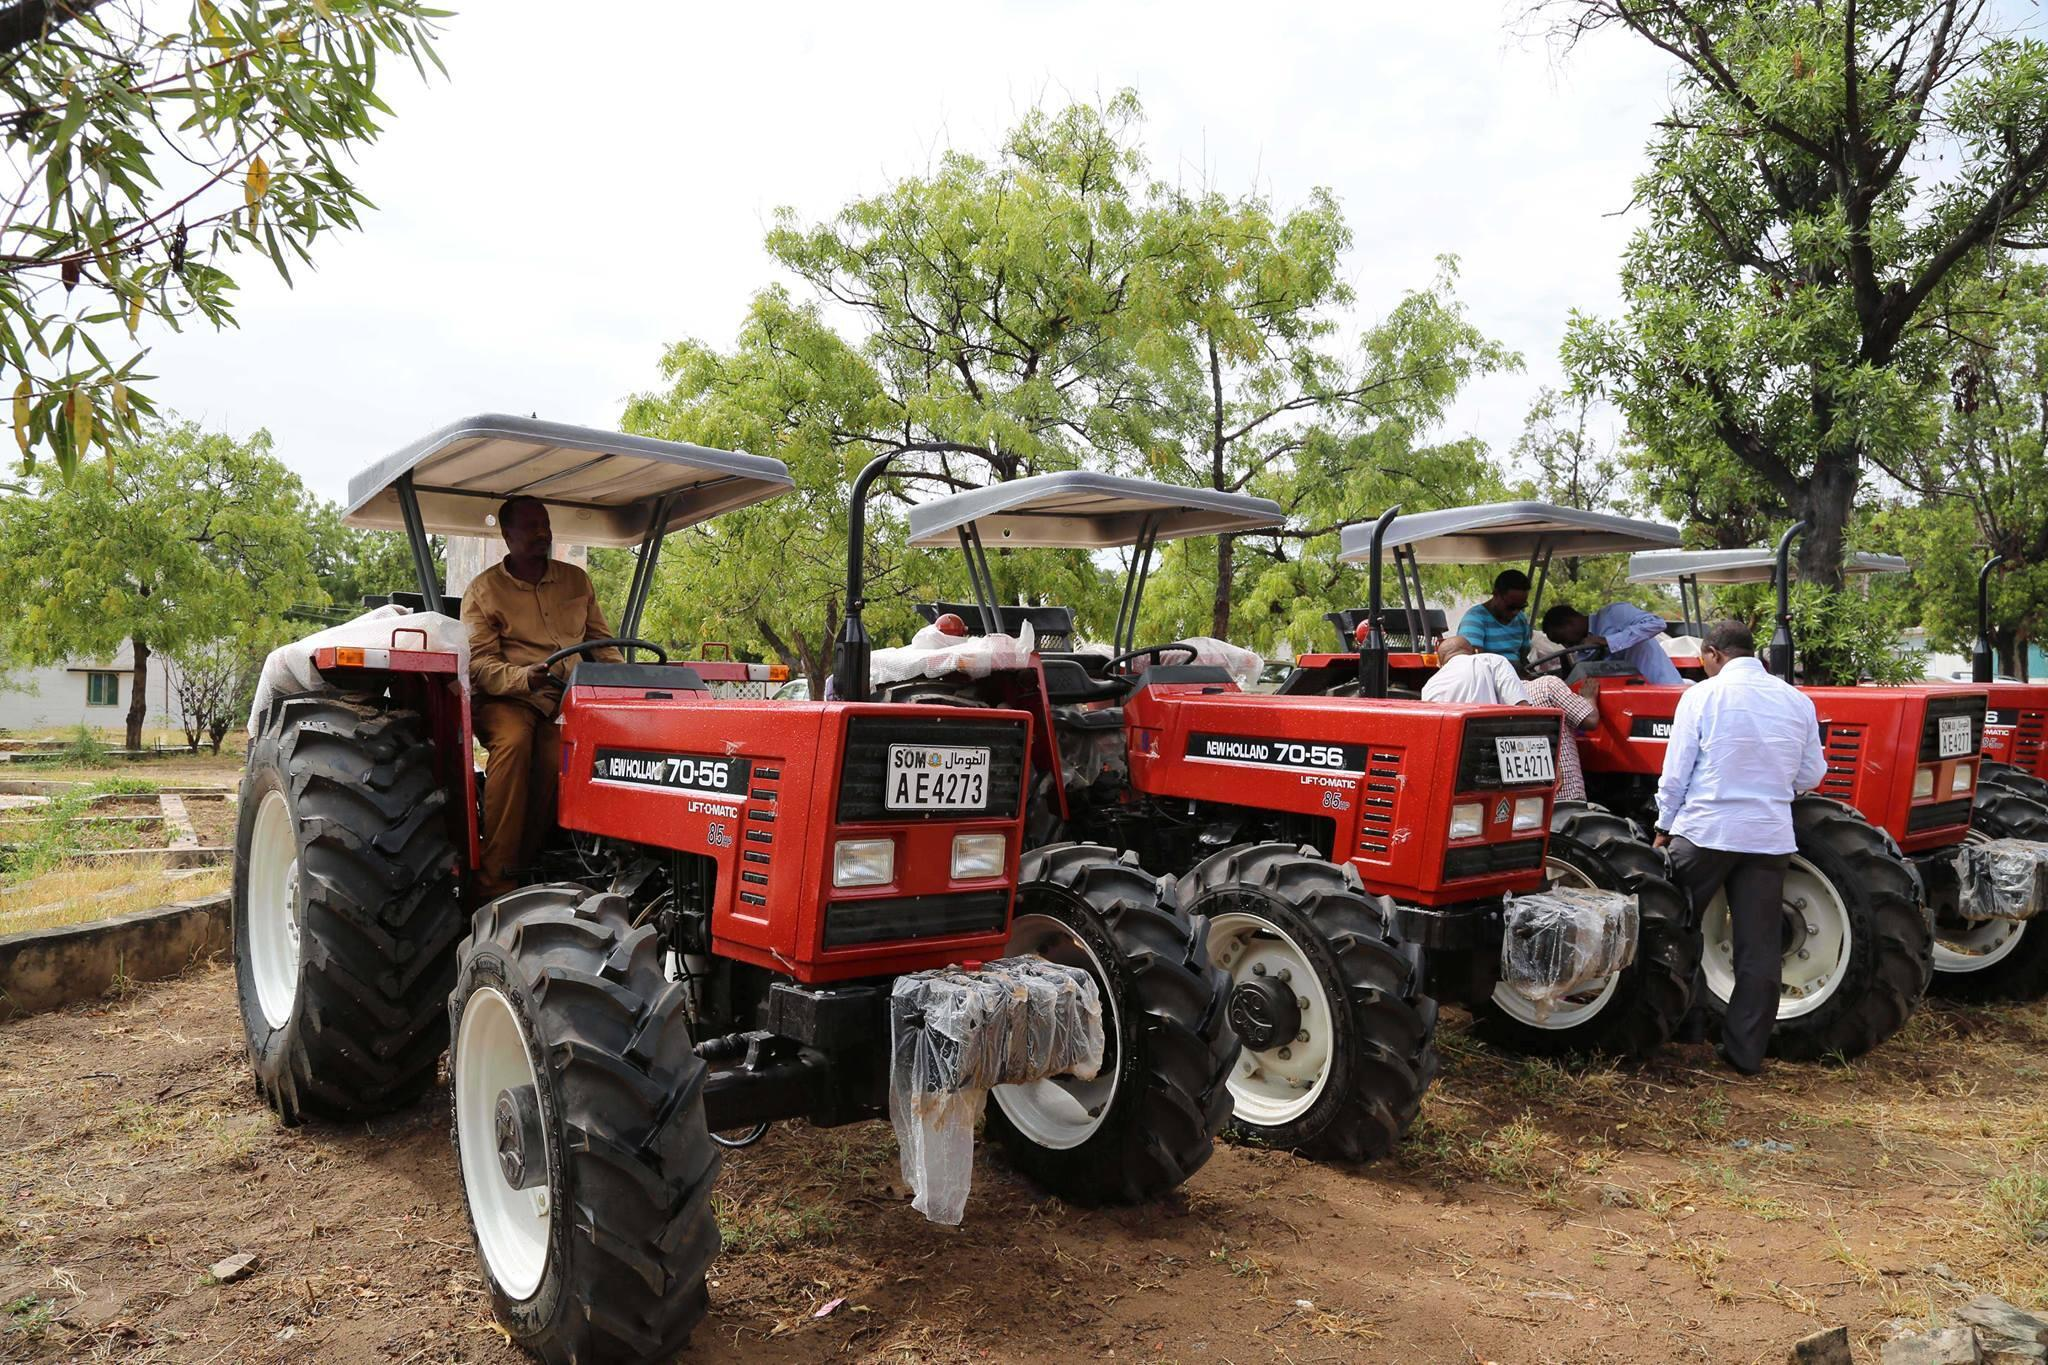 A local bank announced it was giving brand-new tractors as a loan to farmers